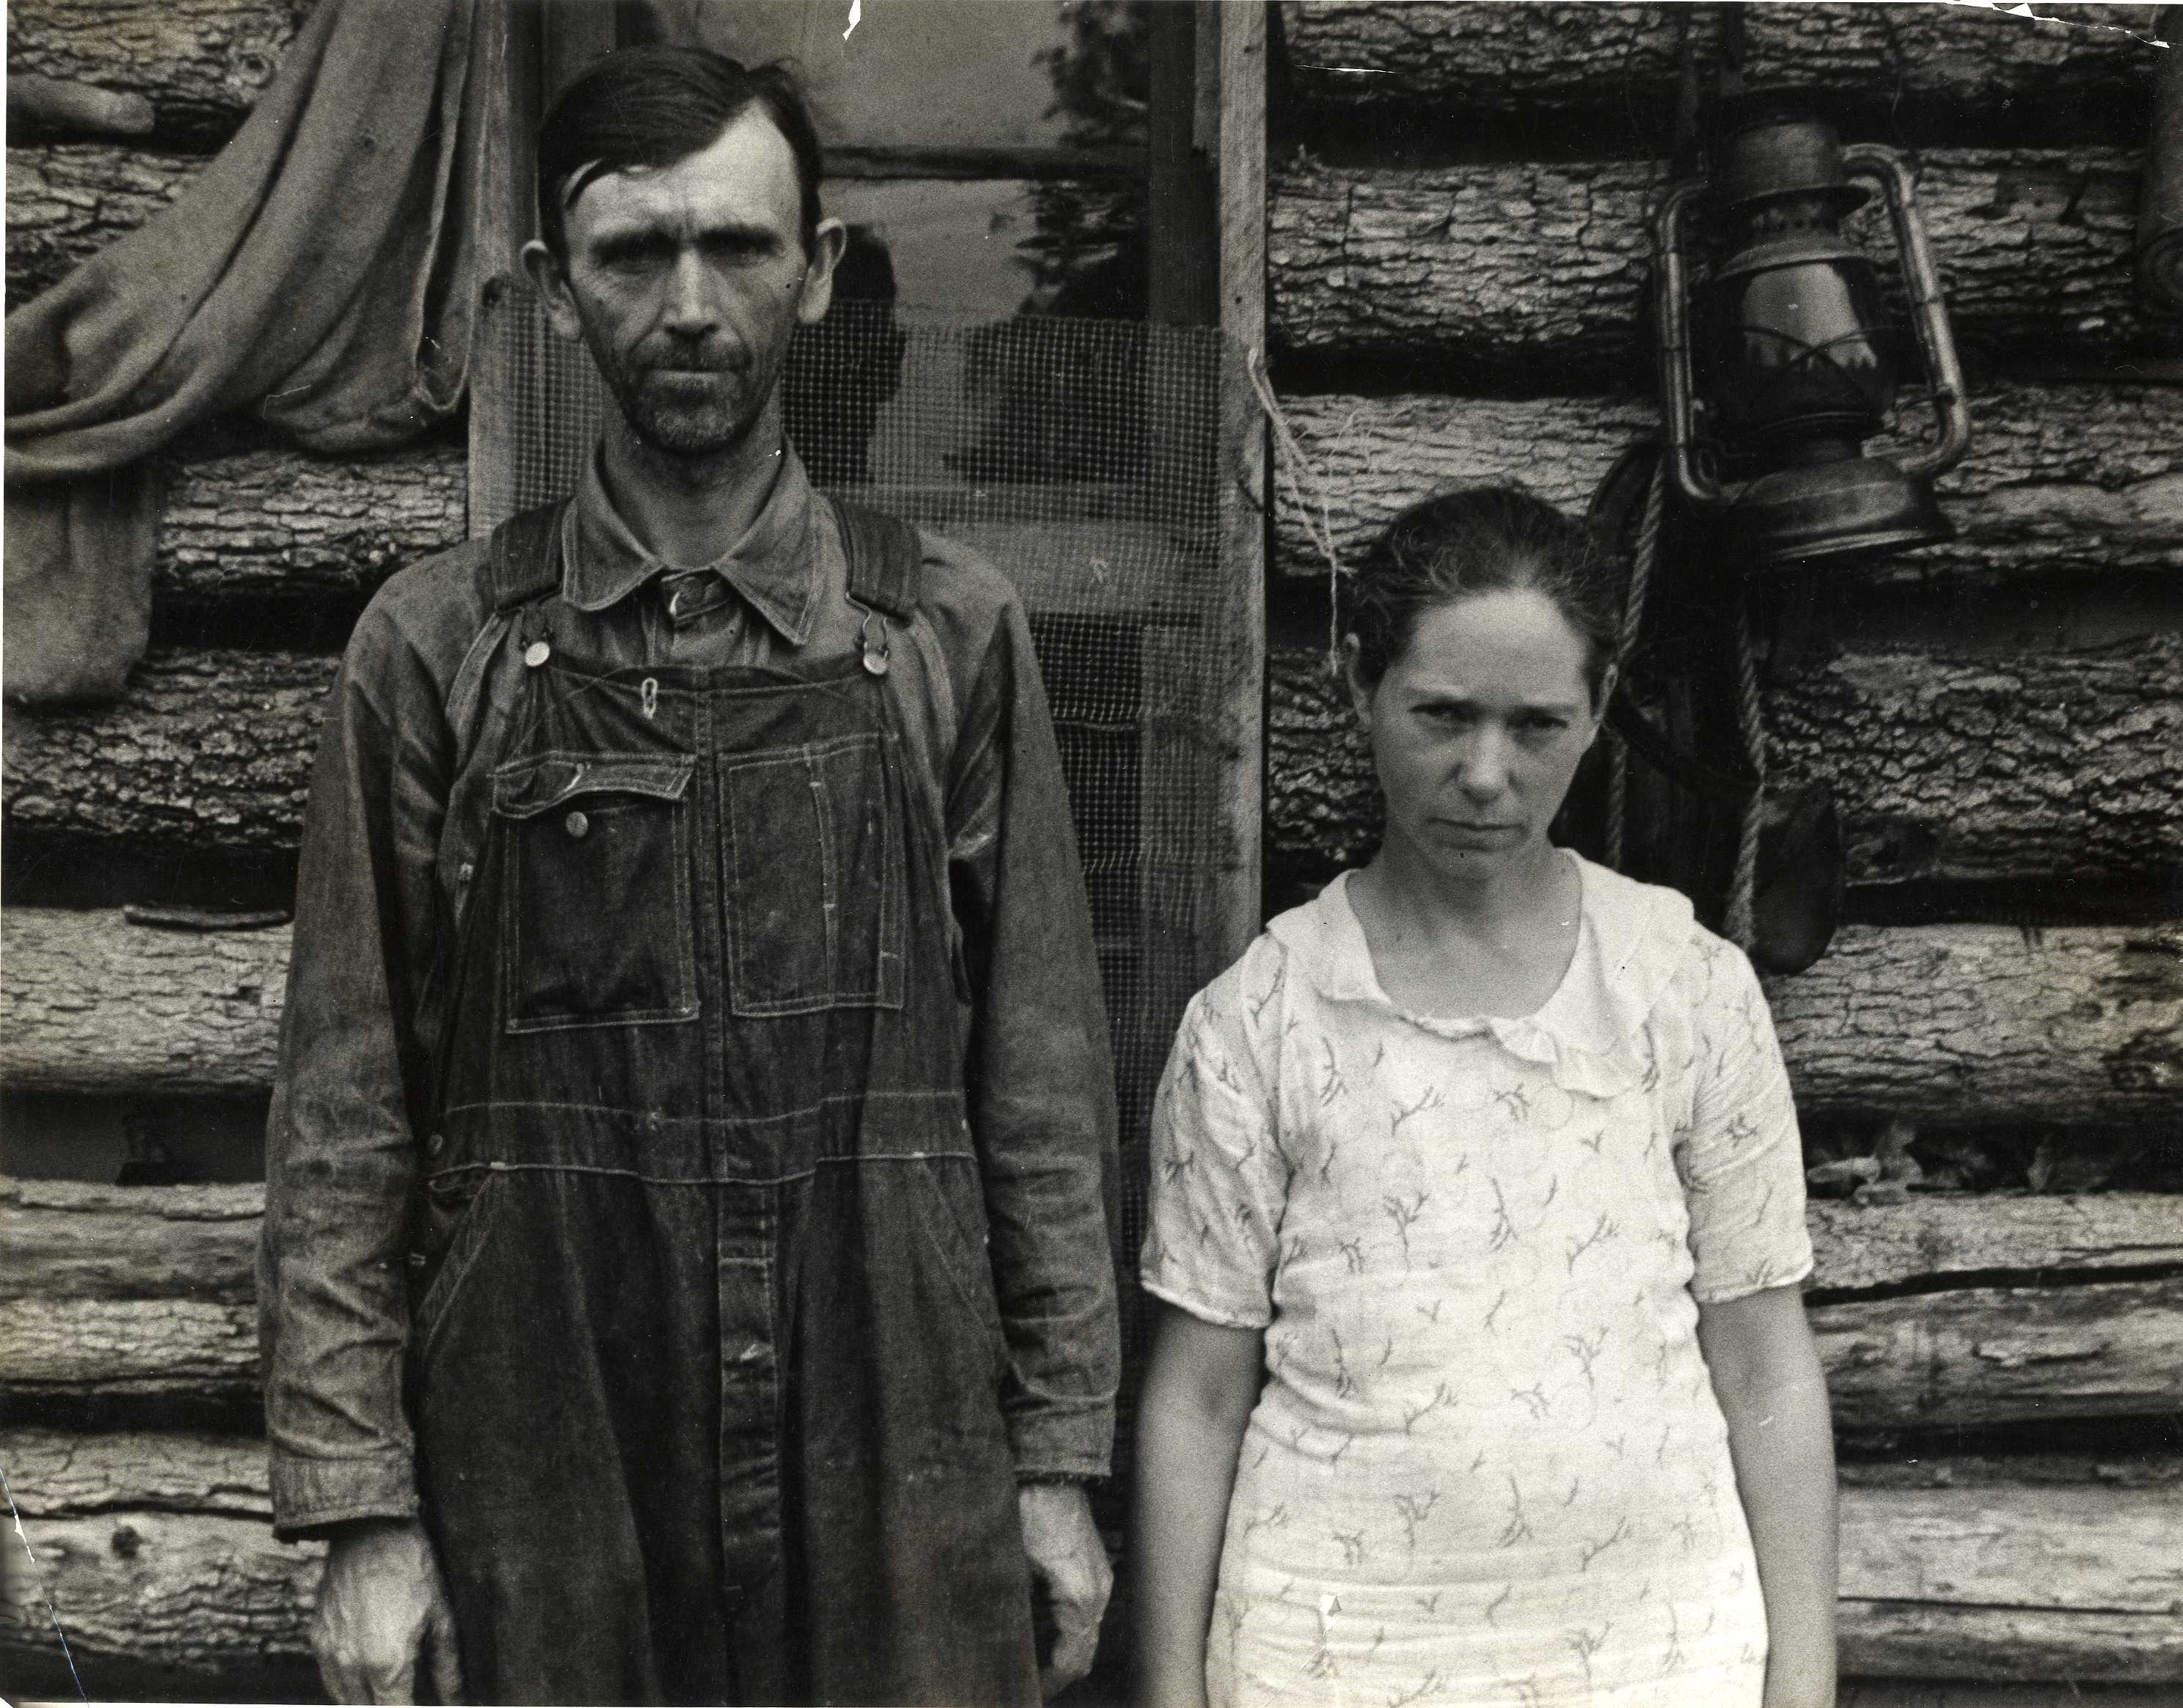 Rehabilitation Clients, Boone County, Arkansas, 1935